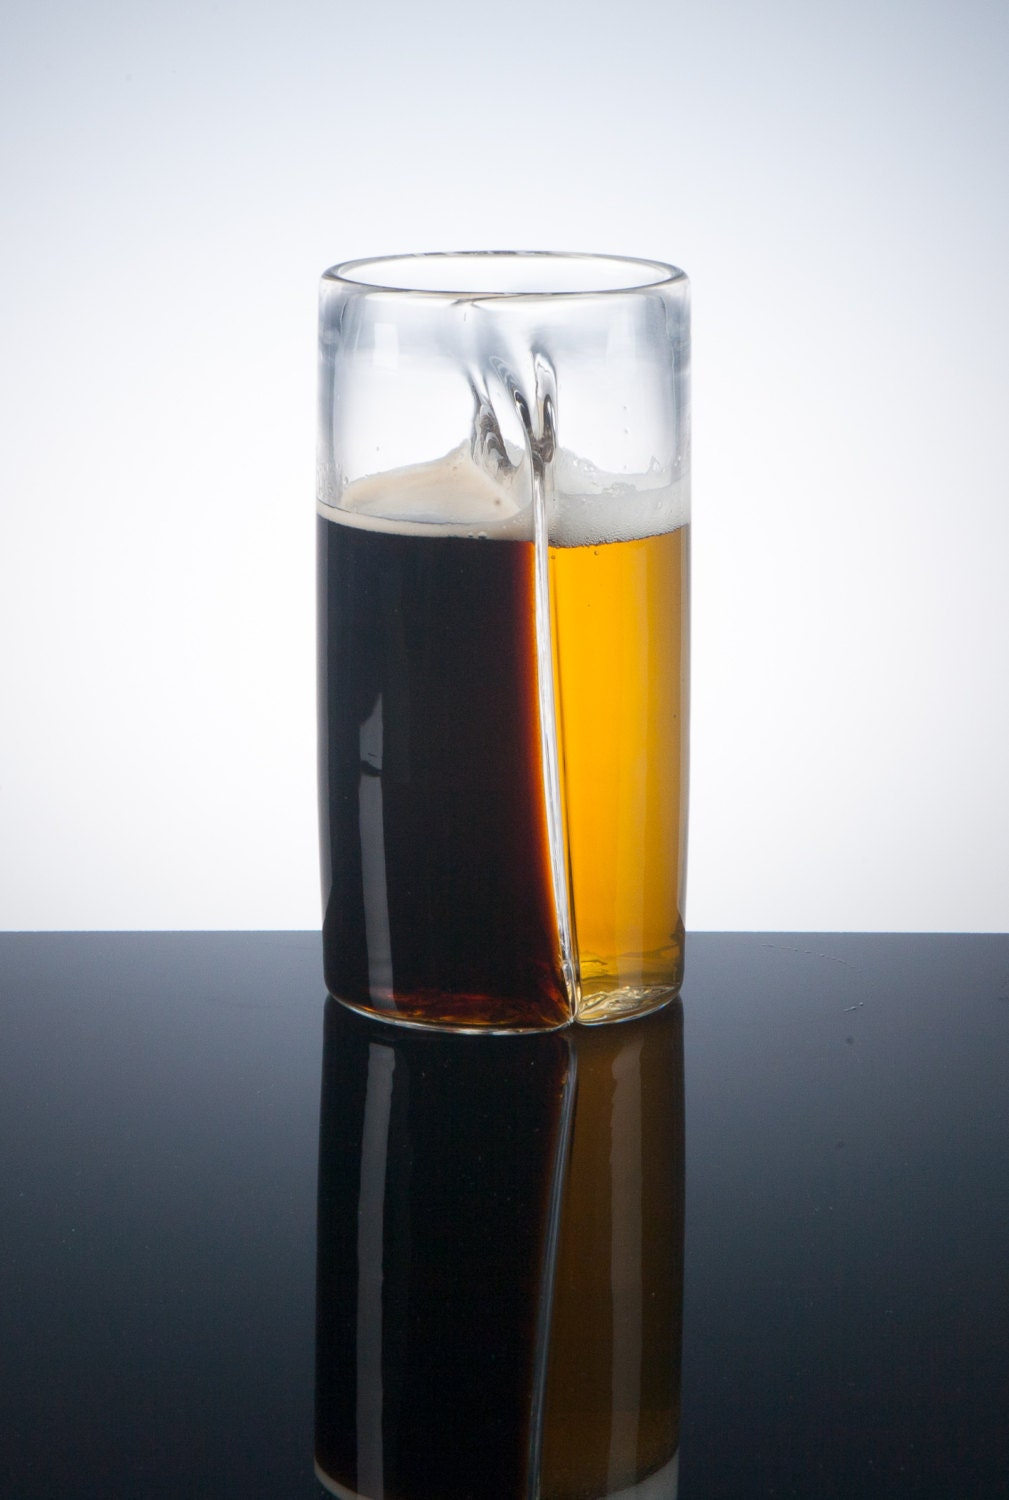 Dual Beer Glass, Craft Beer, Glassware